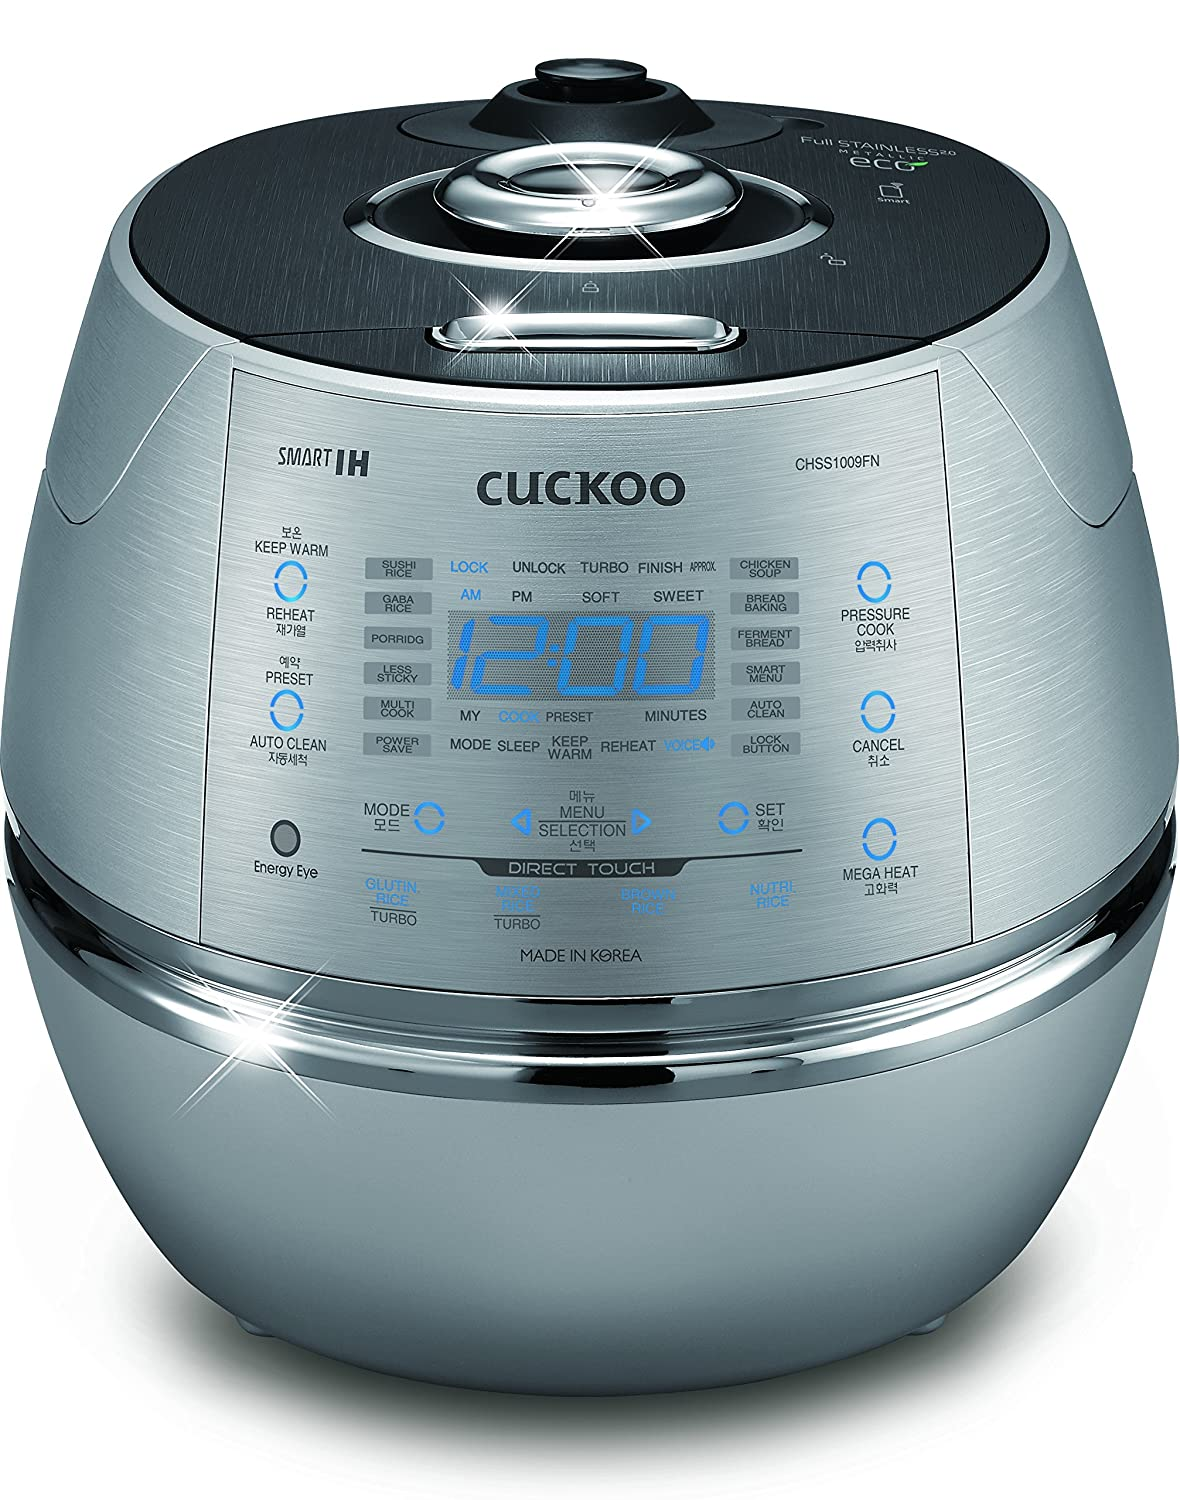 Cuckoo Electric Induction Heating Rice Pressure Cooker 10 Cup Full Stainless Steel Interior with Non-Stick Coating - 3 - Language Voice Navigation and LED Screen with Touch Selection Menu – Metallic